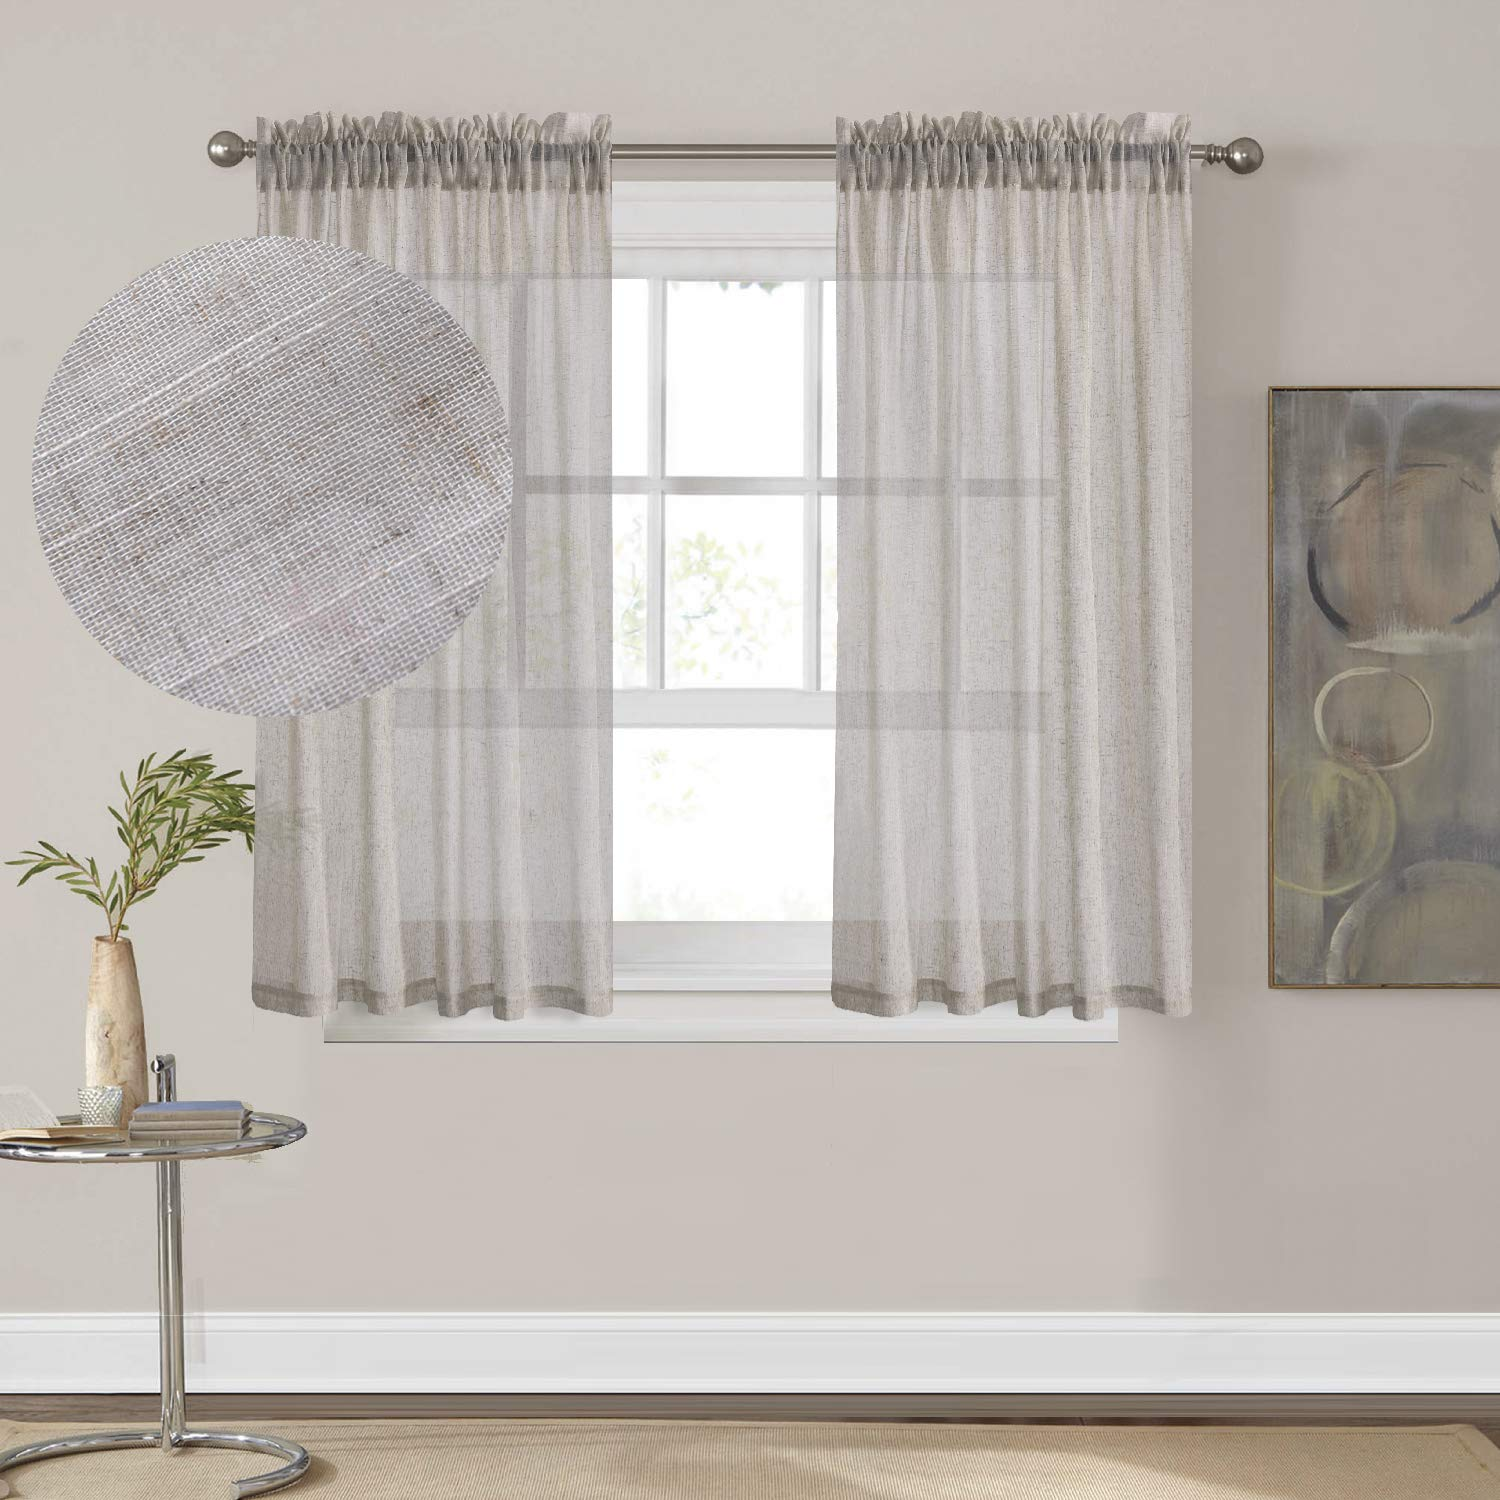 HOME BRILLIANT Premium Soft Linen Blend Semi Sheer Curtains for Kitchen, Rod Pocket, 54 x 45 inch Long, Set of 2